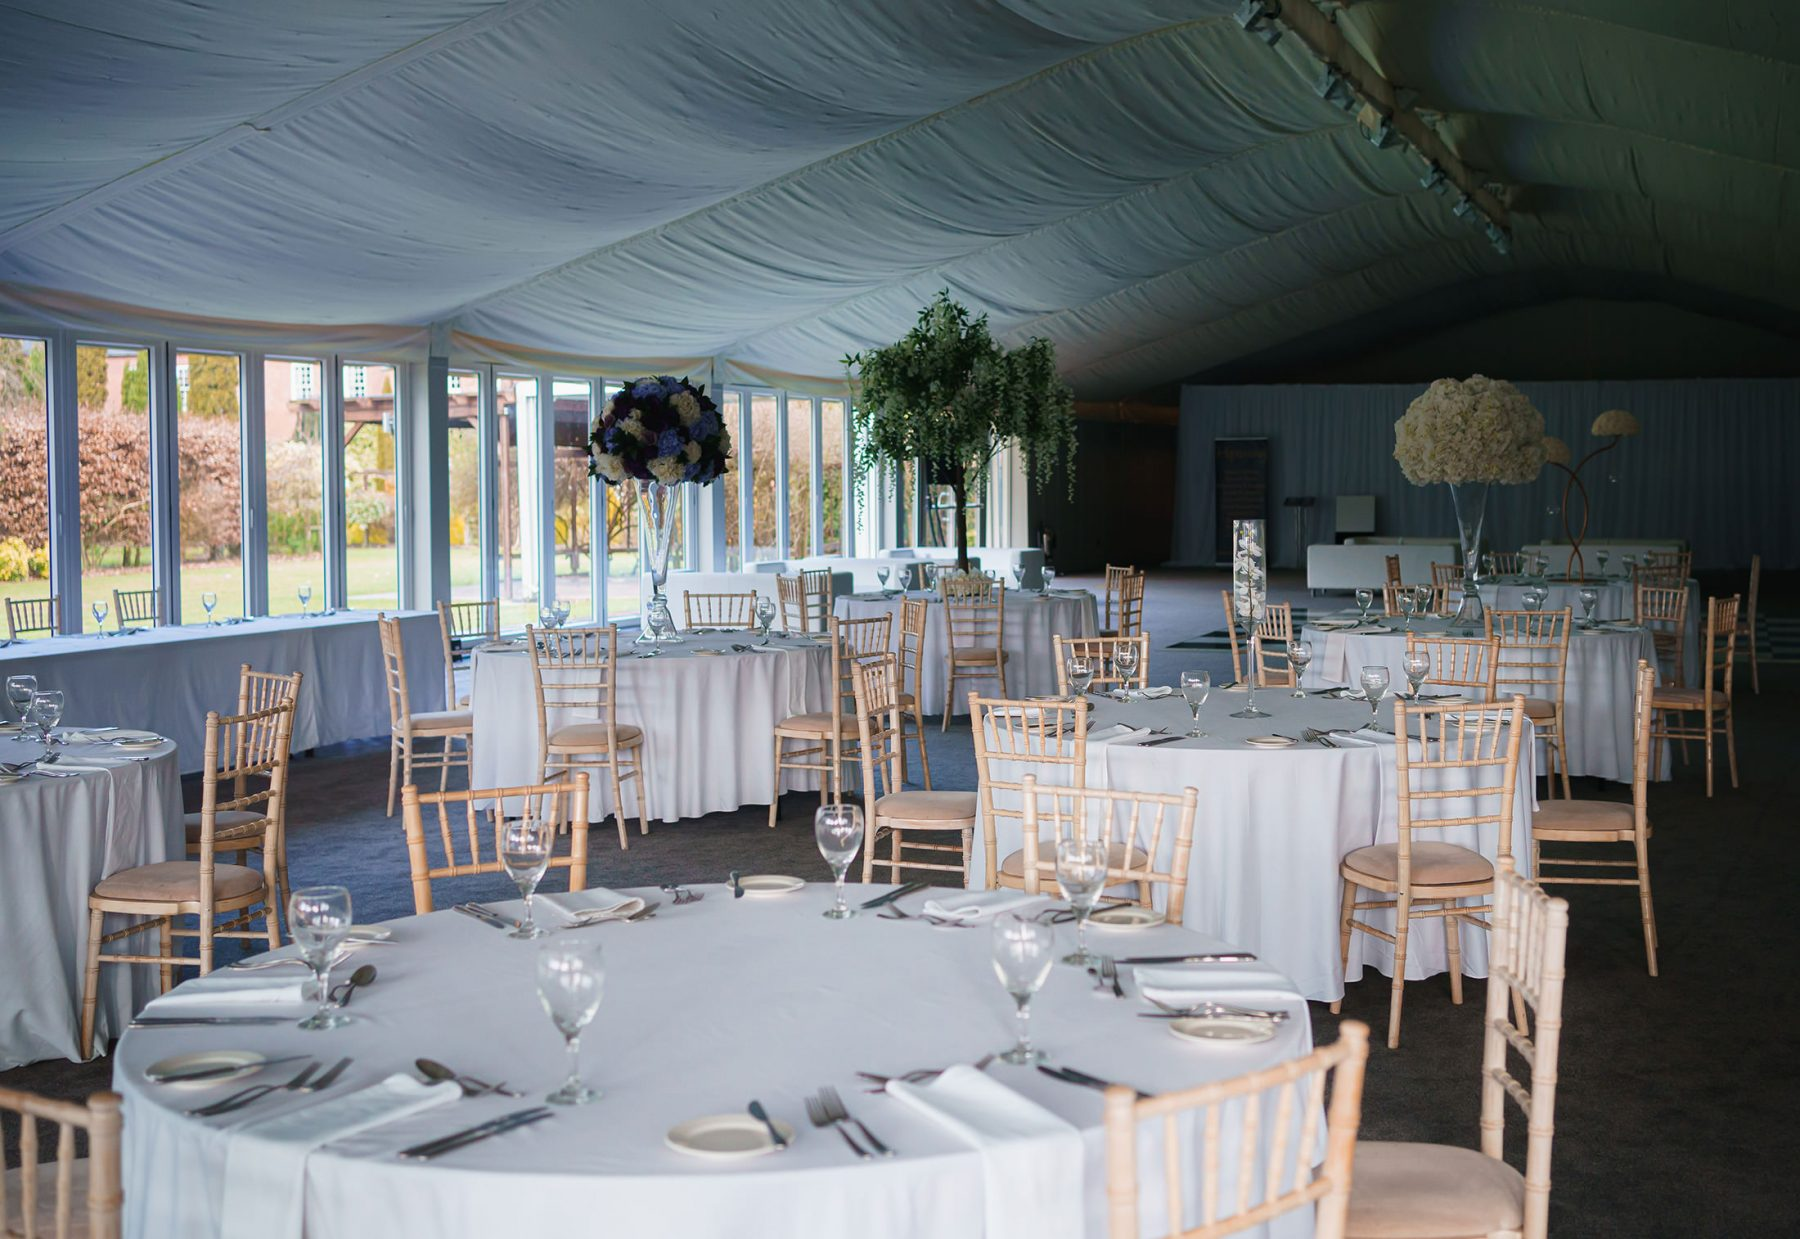 A picture of the marquee at Nunsmere Hall in Cheshire - Country House weddings at Nunsmere Hall